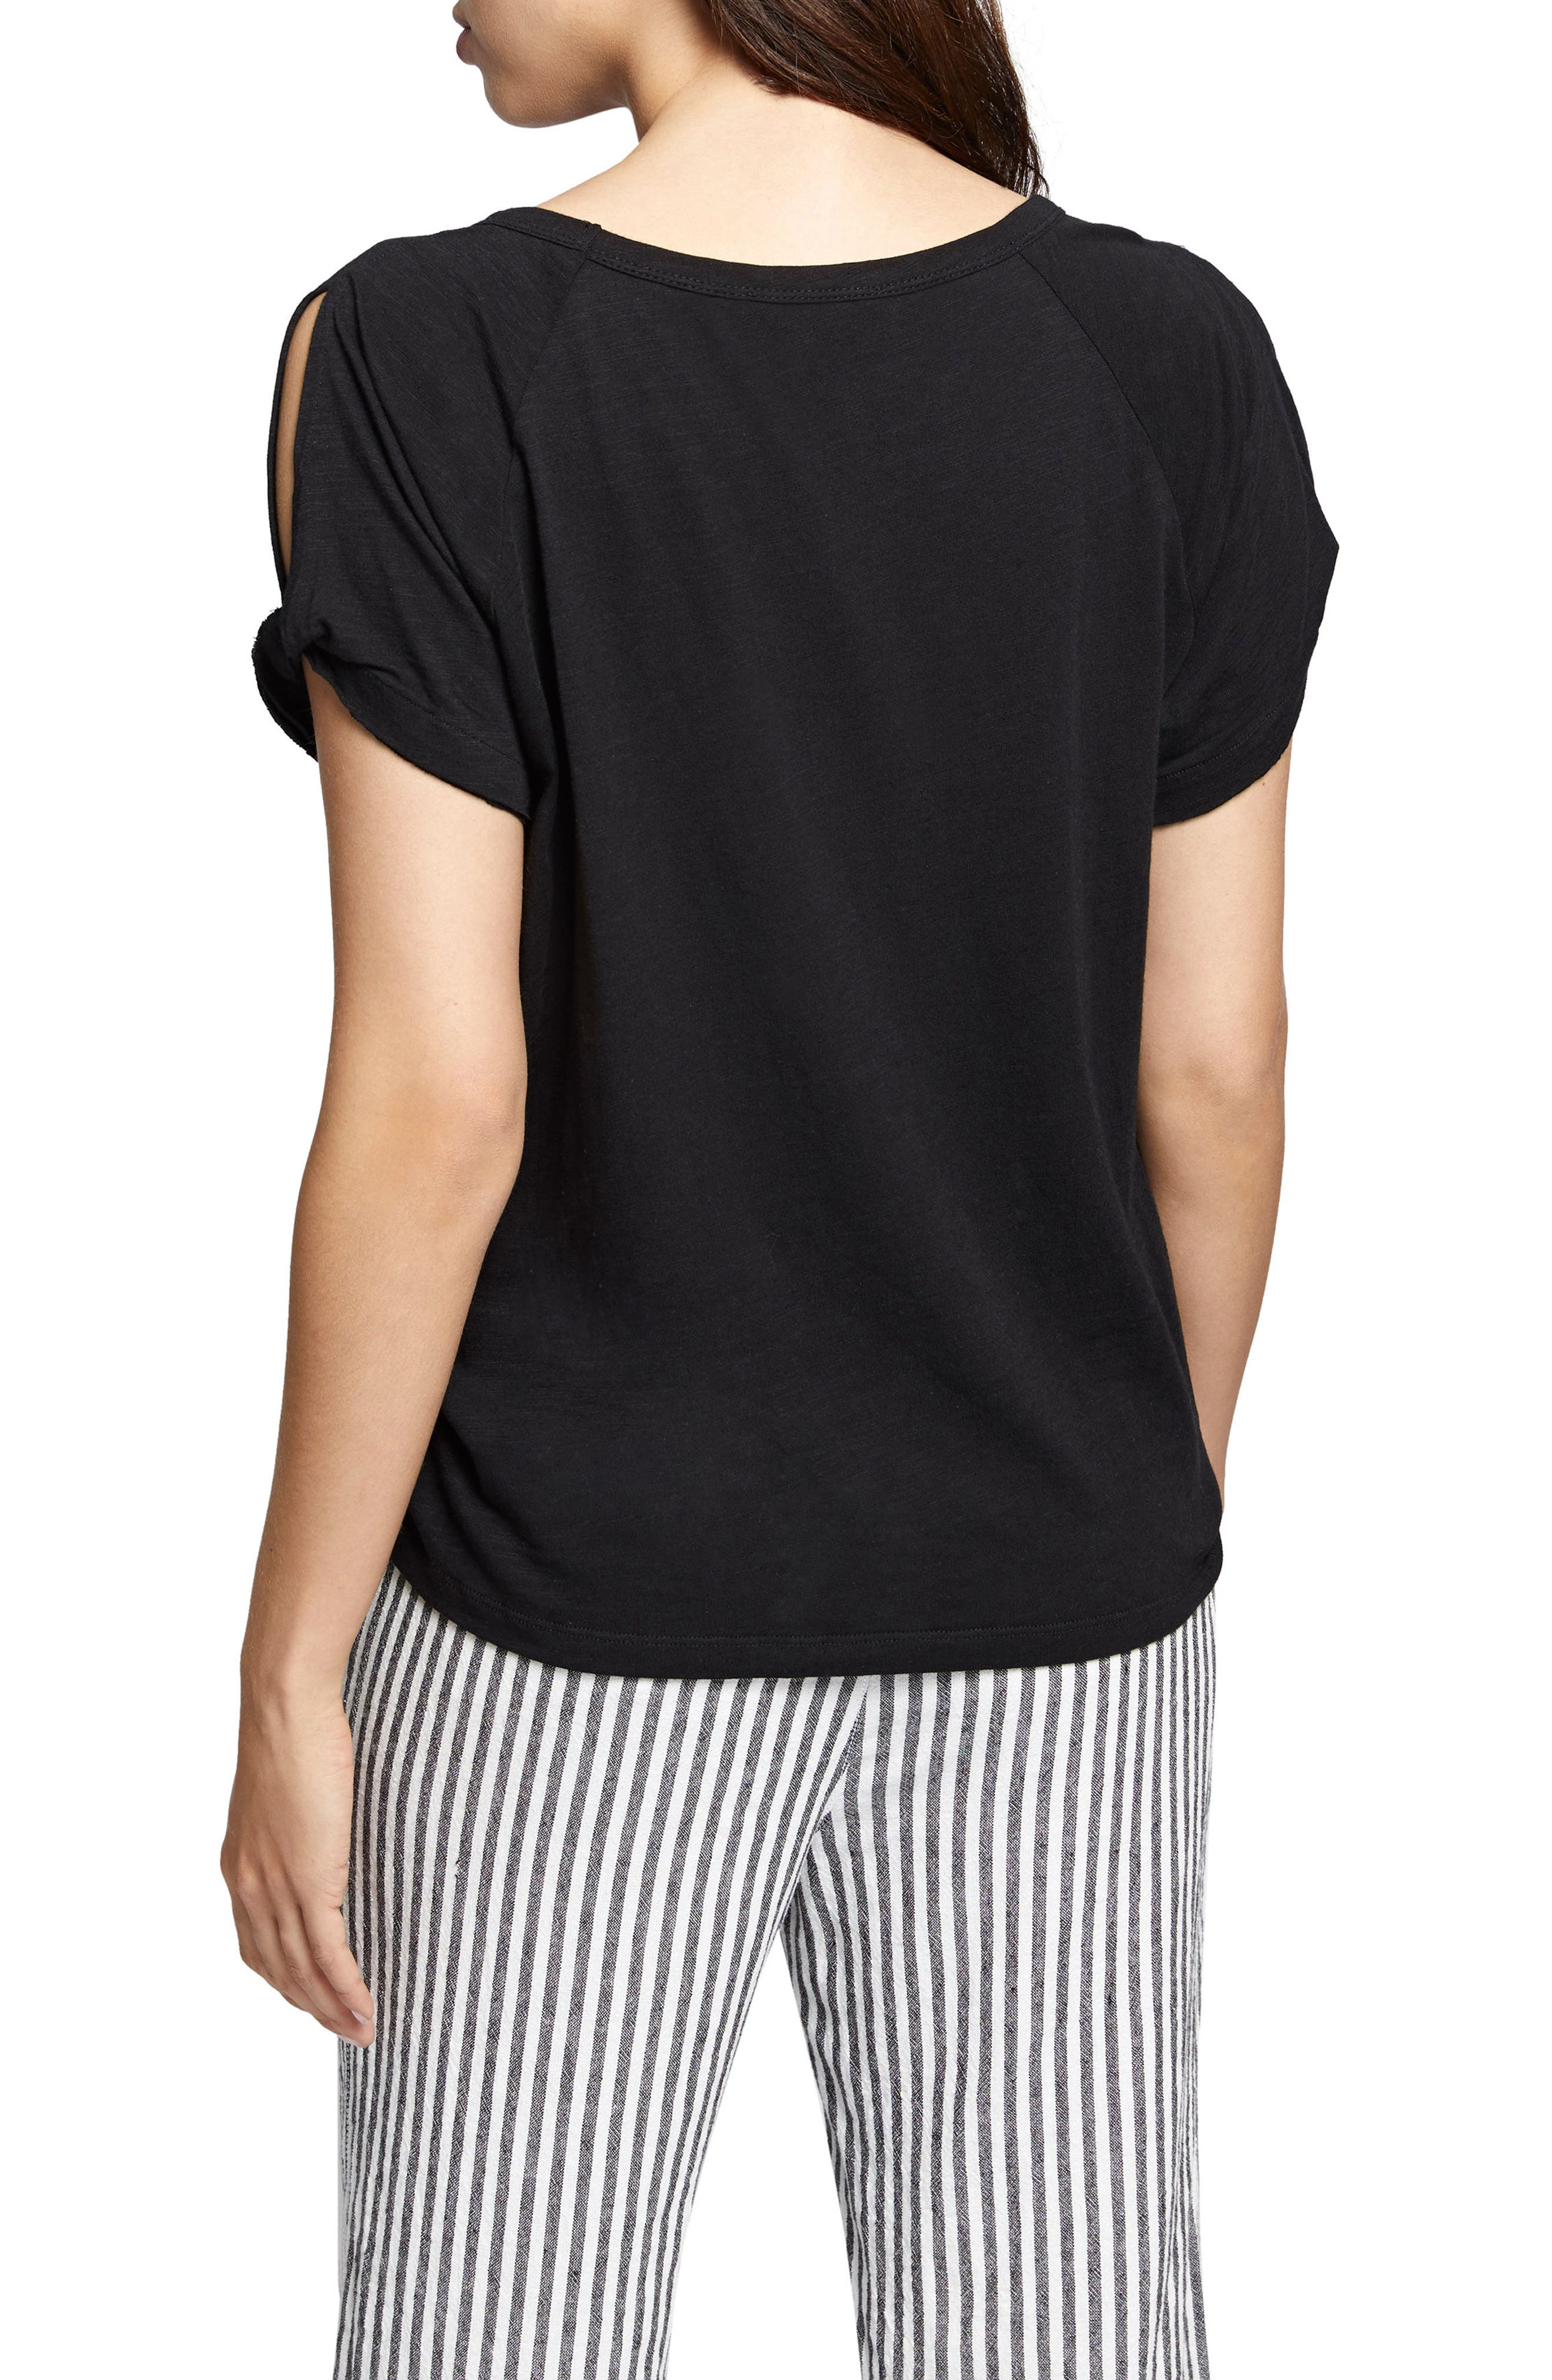 Adrienne Side Twist Cotton Blend Top,                             Alternate thumbnail 2, color,                             001